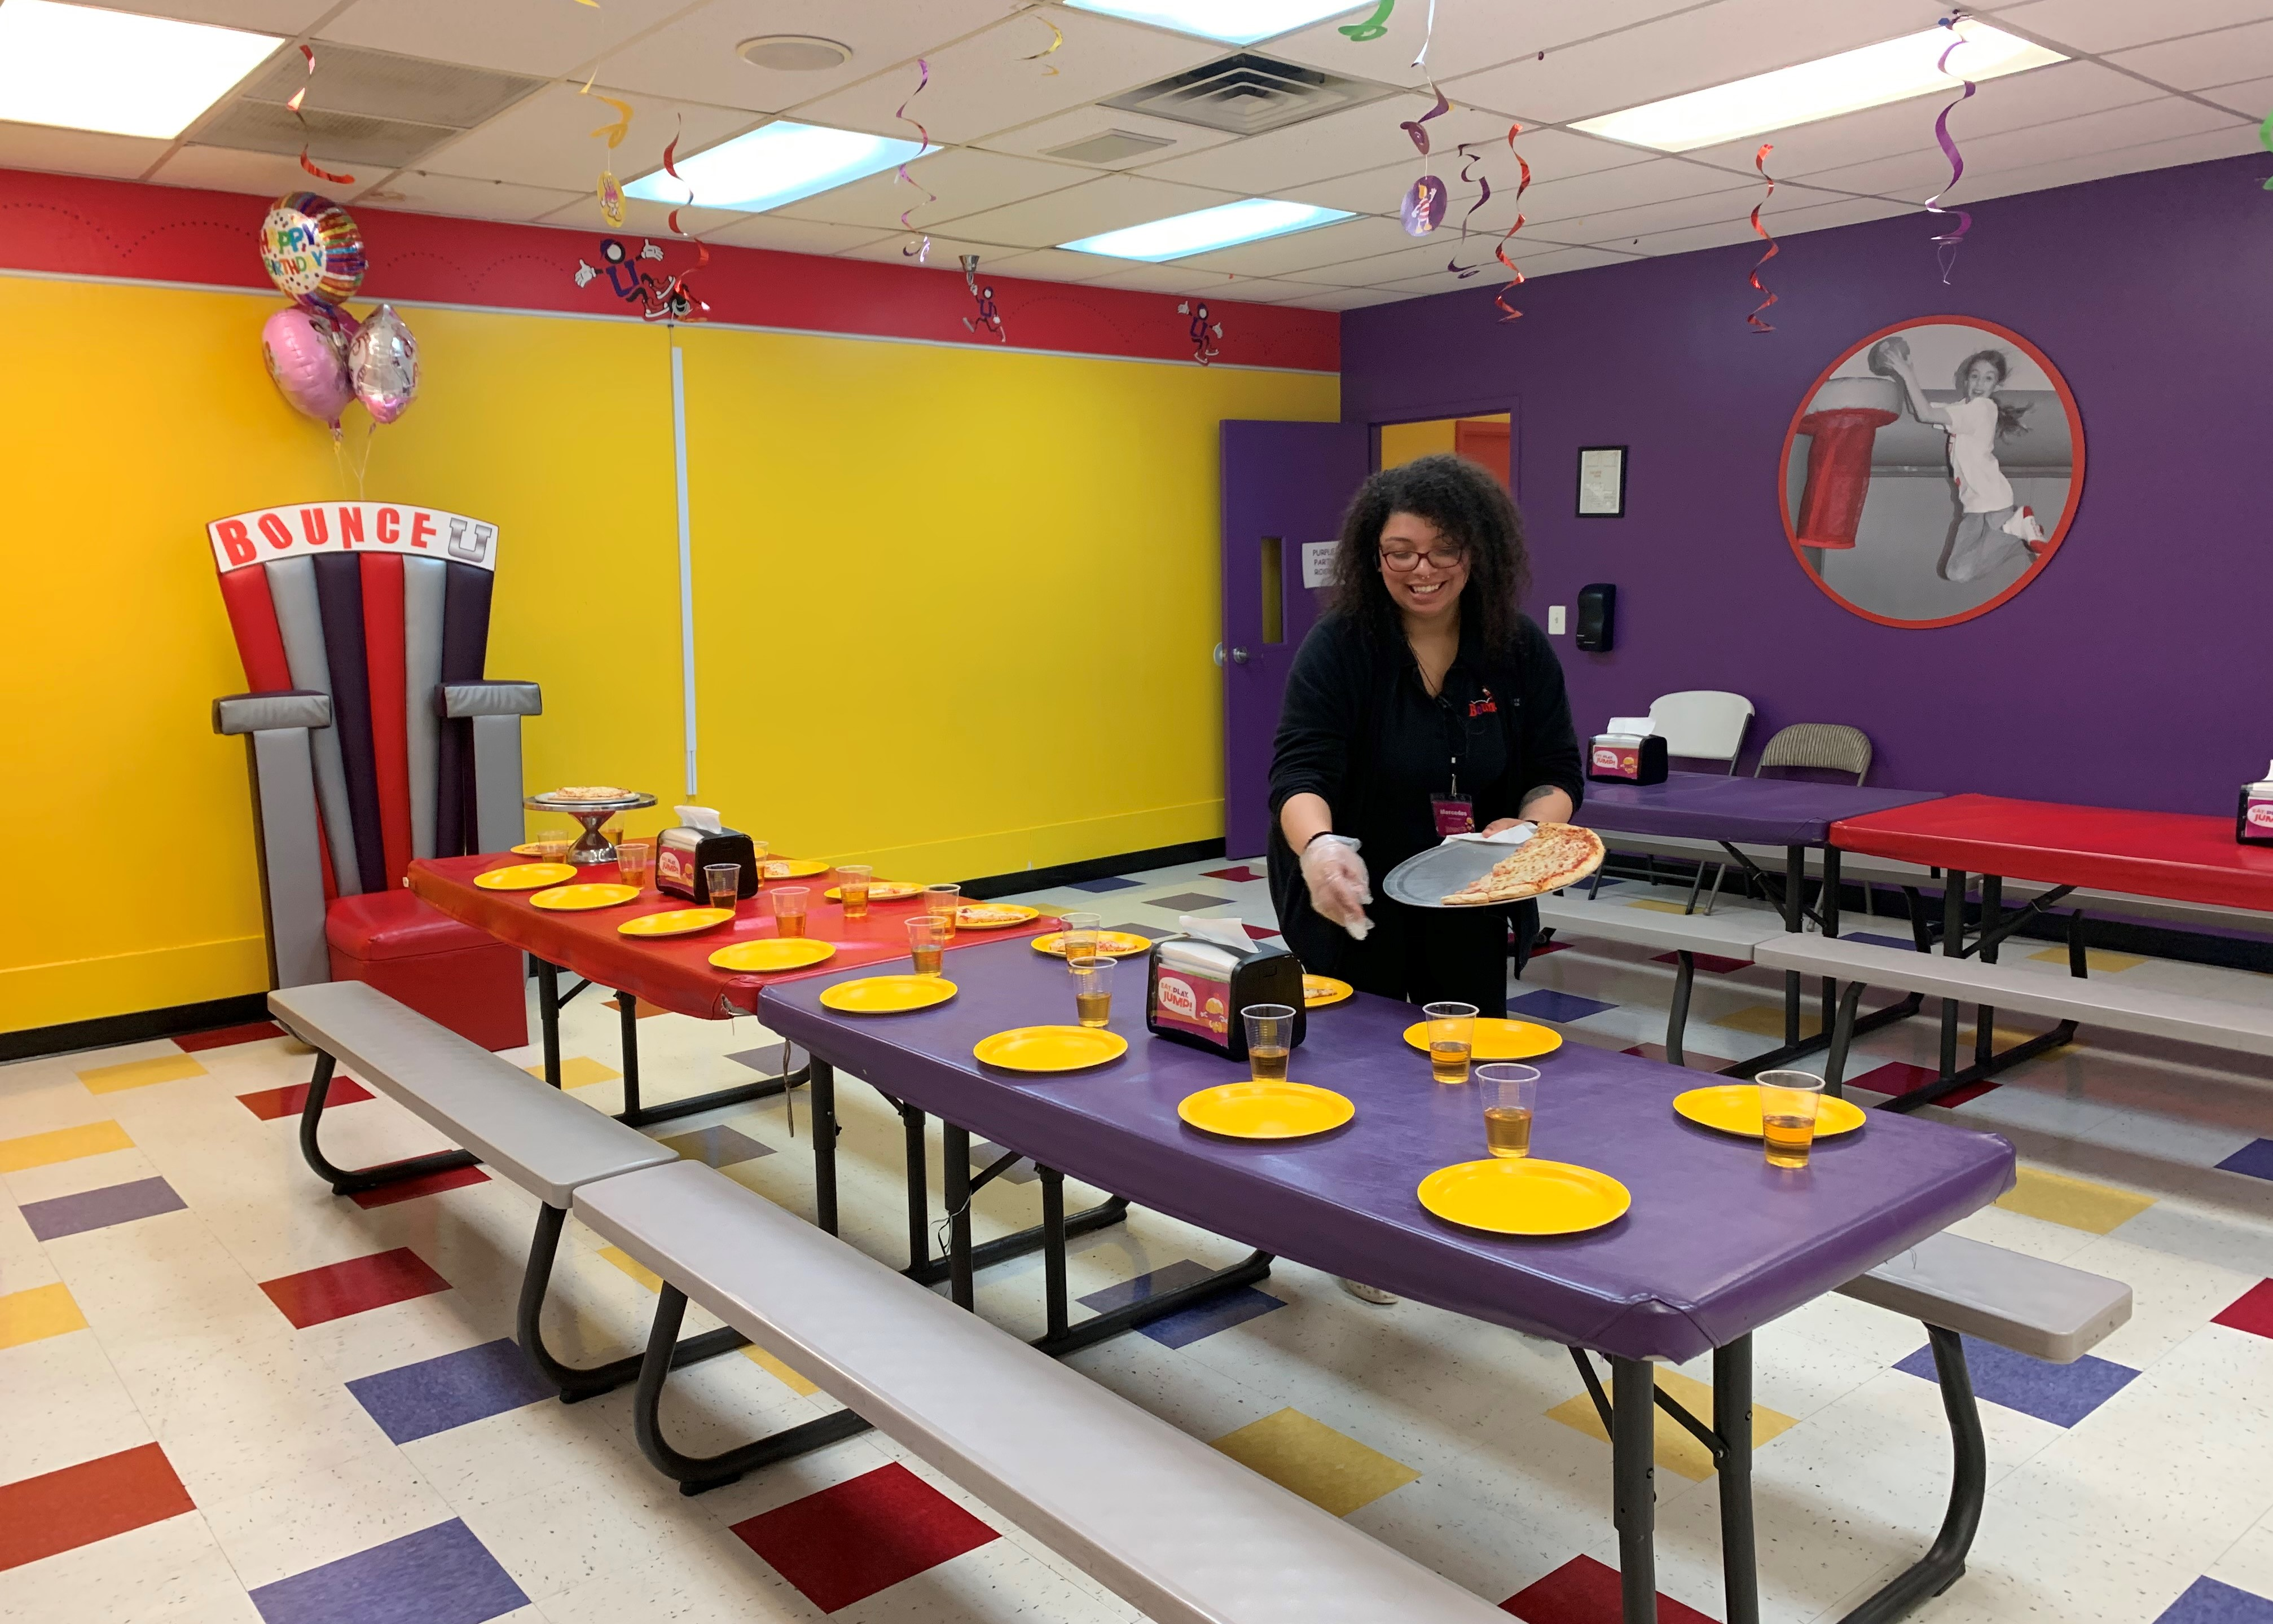 BounceU birthday party staff setting up plates and cups in a private party.